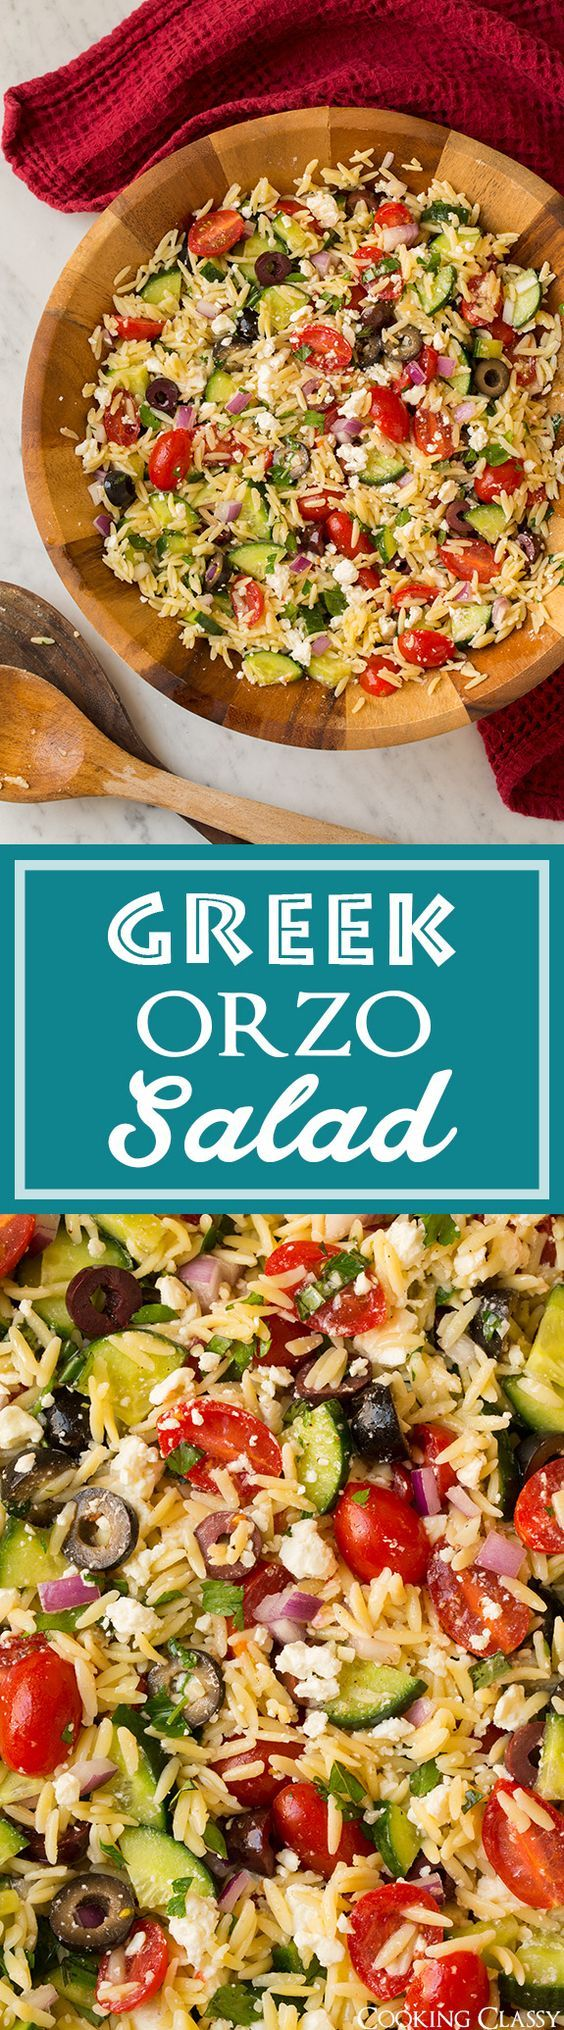 Greek Orzo Salad ~ 1¼ cups (8 oz) dry orzo, 1 cup (5 oz) crumbled feta, 1 diced medium cucumber, 10.5 oz pkg grape tomatoes halved,  ½ cup sliced kalamata olives or ¾ cup sliced black olives, ½ cup chopped red onion, 3 Tbsp chopped fresh basil,  2 Tbsp chopped fresh parsley. Dressing: ⅓ cup EVOO, 3 Tbsp fresh lemon juice, 1 clove minced garlic, salt & black pepper to taste